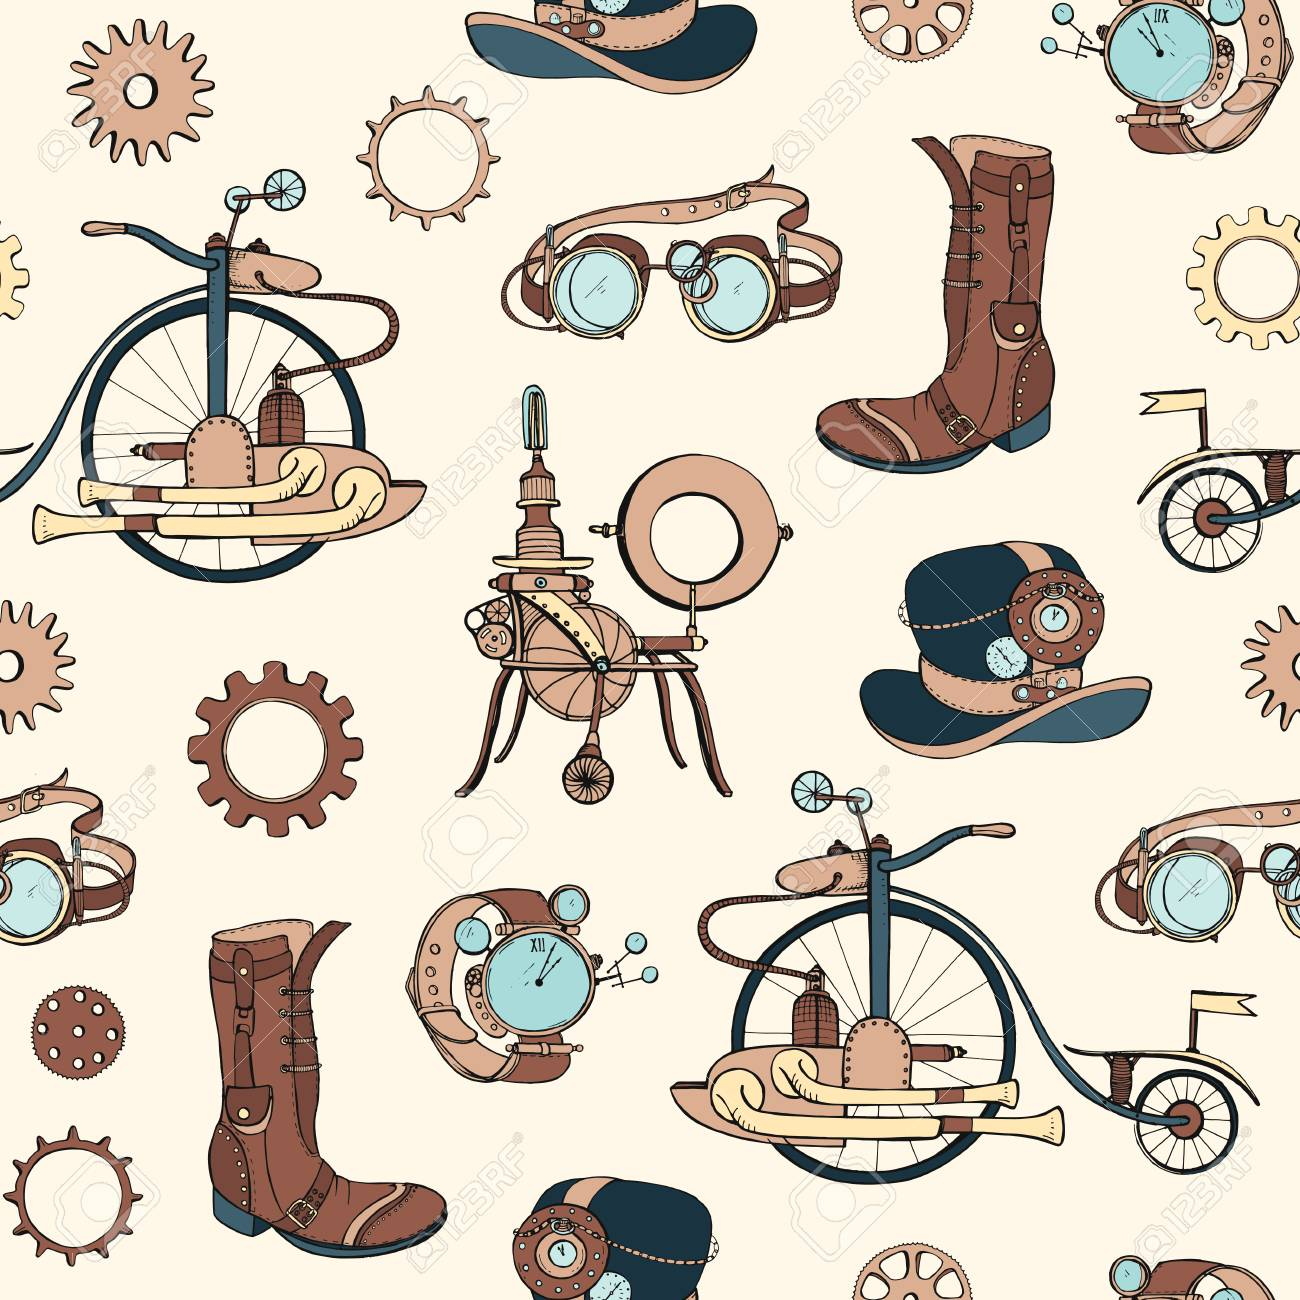 Seamless pattern with steampunk attributes and apparel hand drawn on light background. Backdrop with steam powered machines. Colorful realistic vector illustration for wallpaper, wrapping paper - 115043212